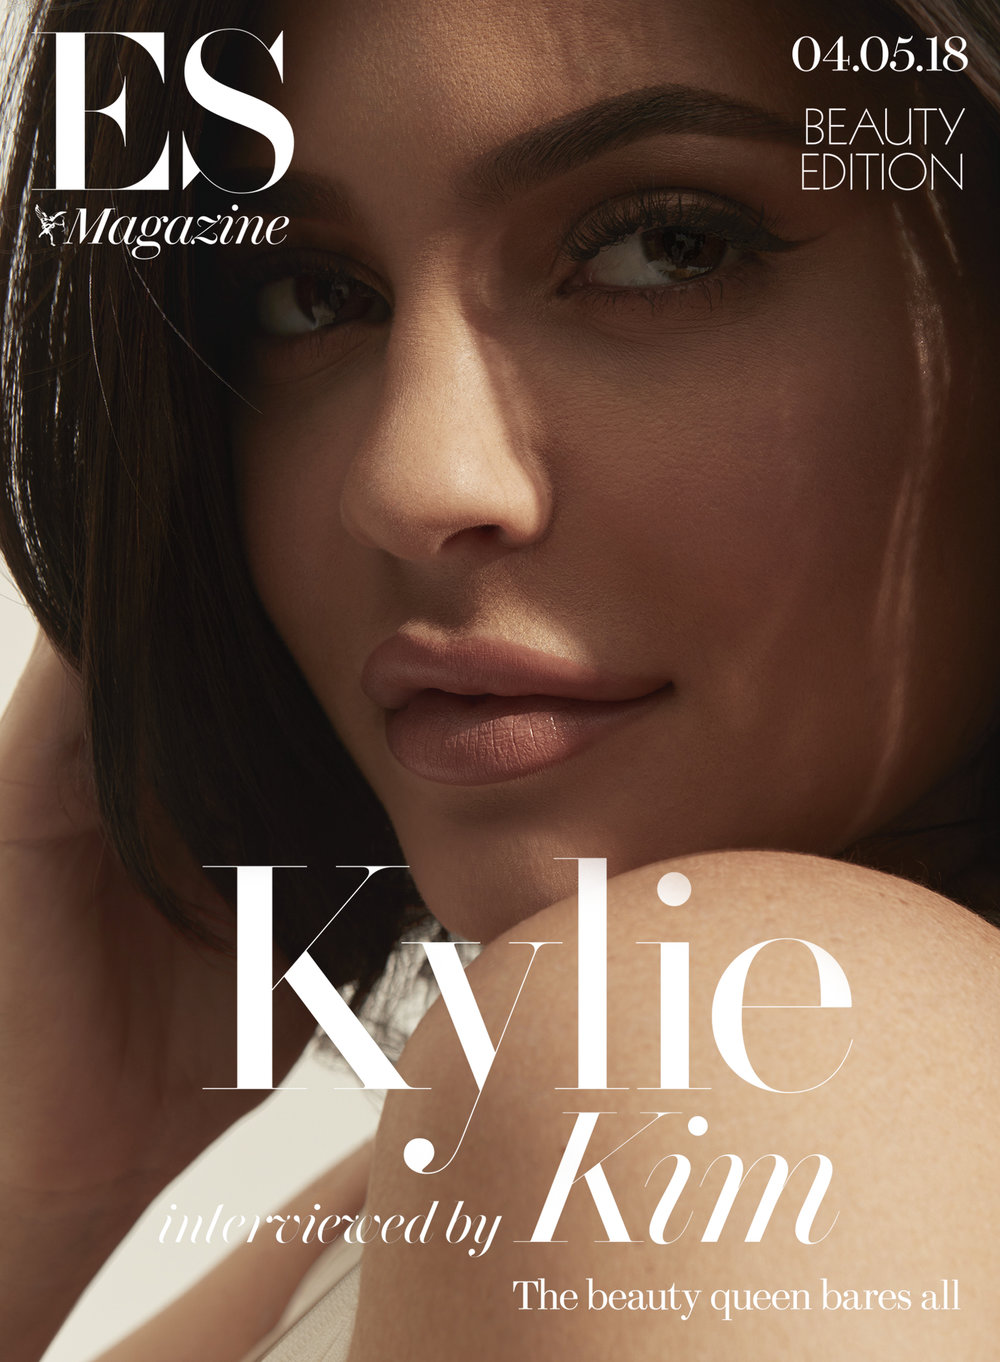 Kylie Jenner for ES MAGAZINE